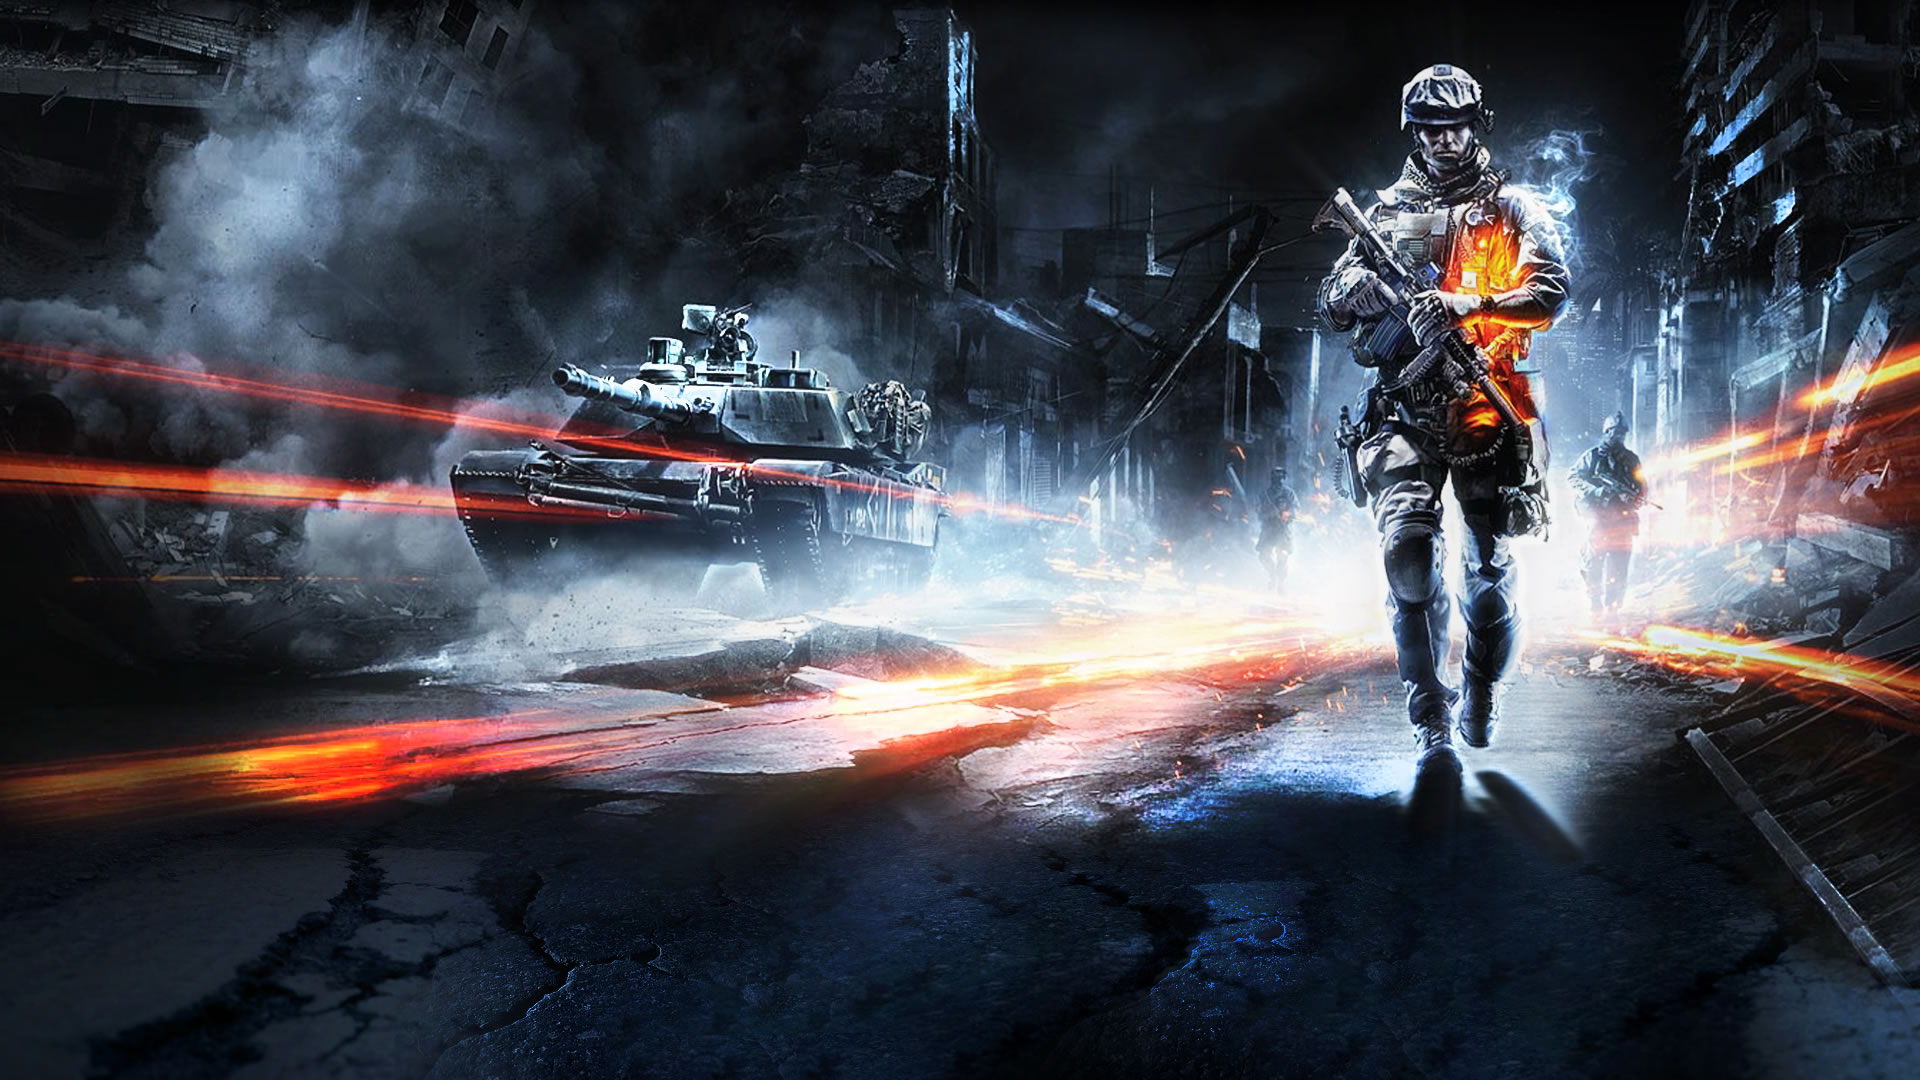 Battlefield 3 Wallpaper Deadly